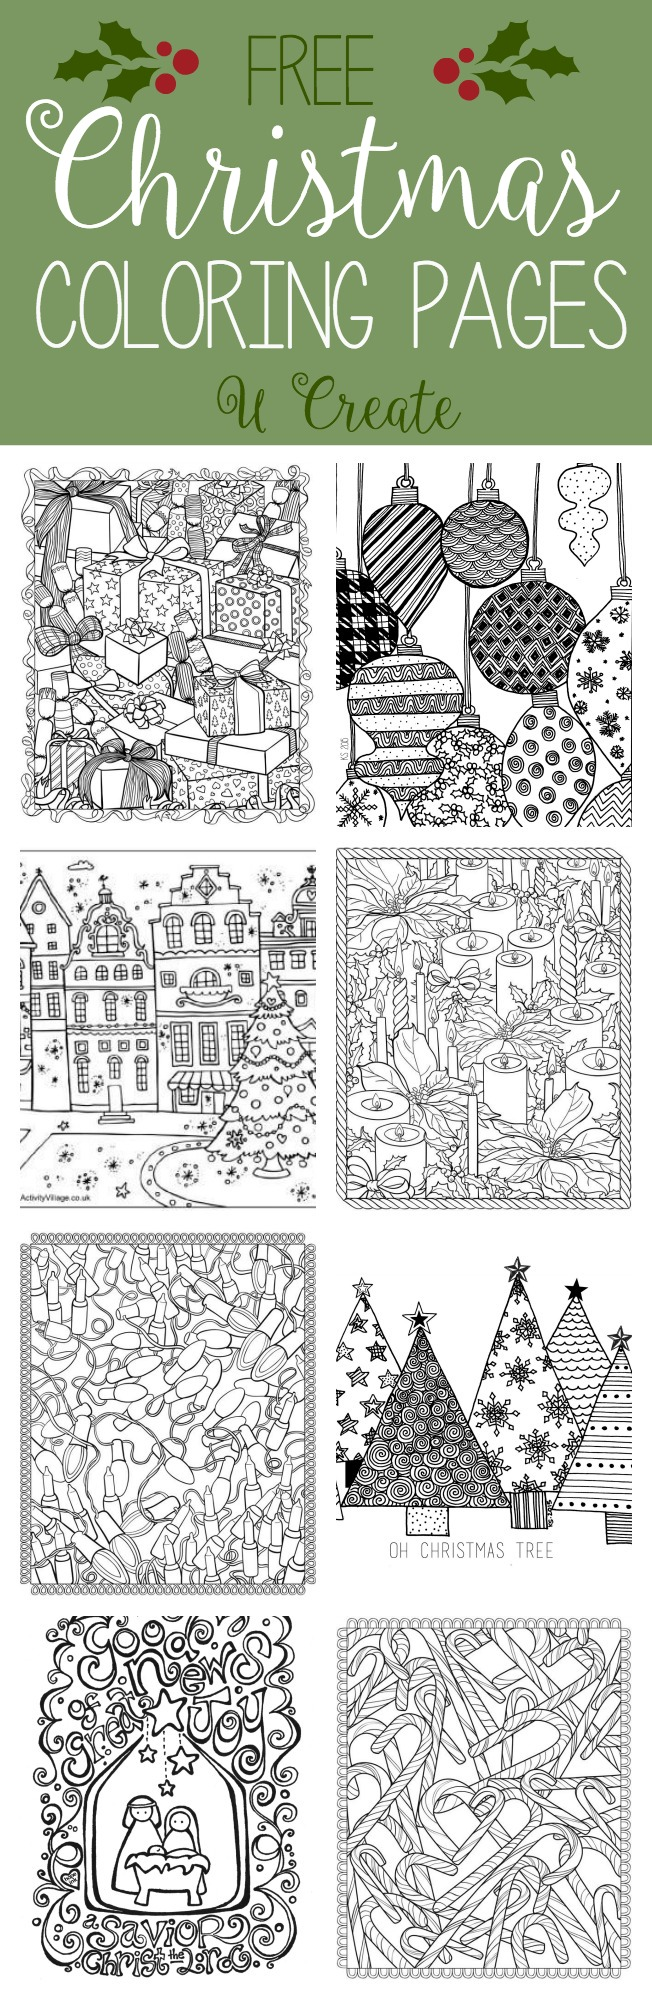 medium resolution of Free Christmas Adult Coloring Pages - U Create